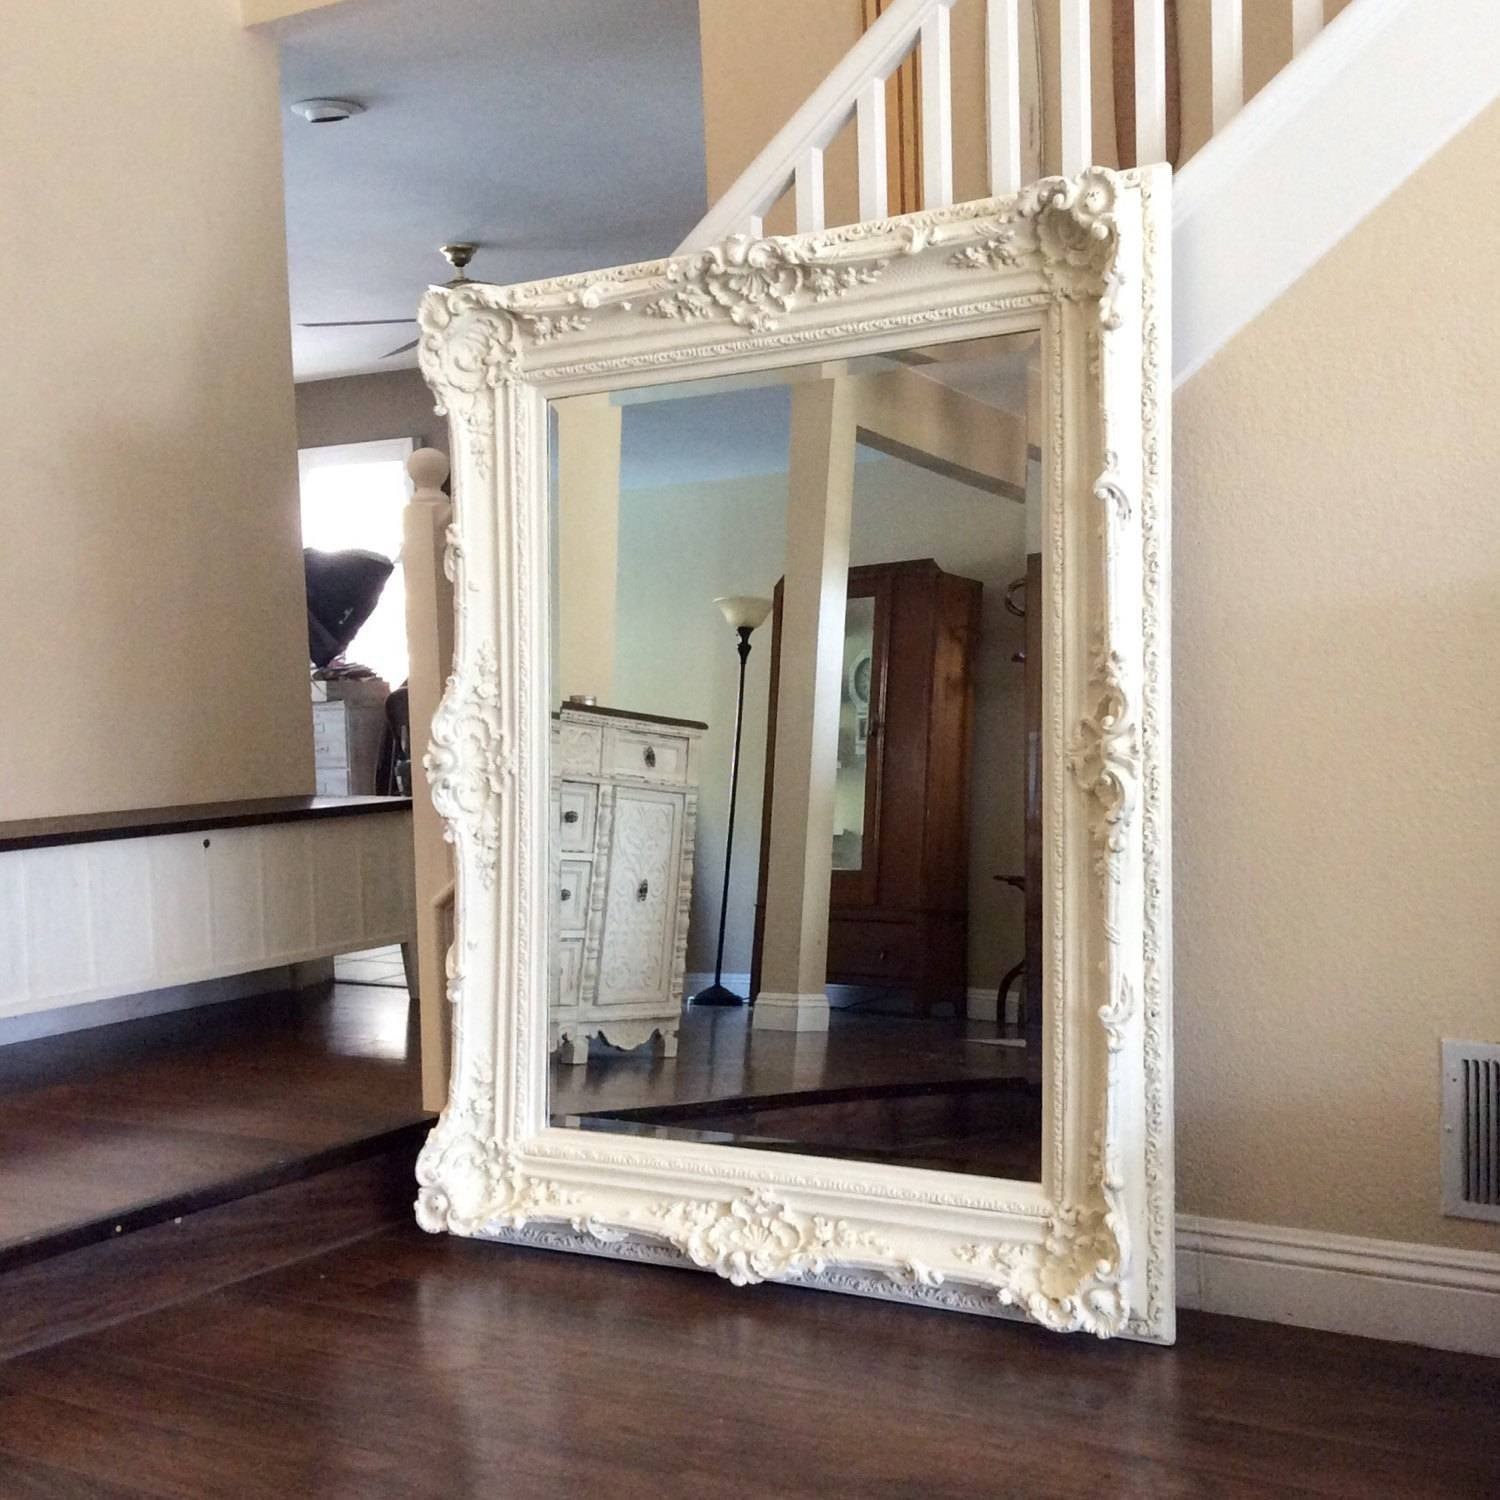 Shabby Chic Wall Mirror 40 Nice Decorating With Vintage Shabby regarding Vintage Shabby Chic Mirrors (Image 20 of 25)